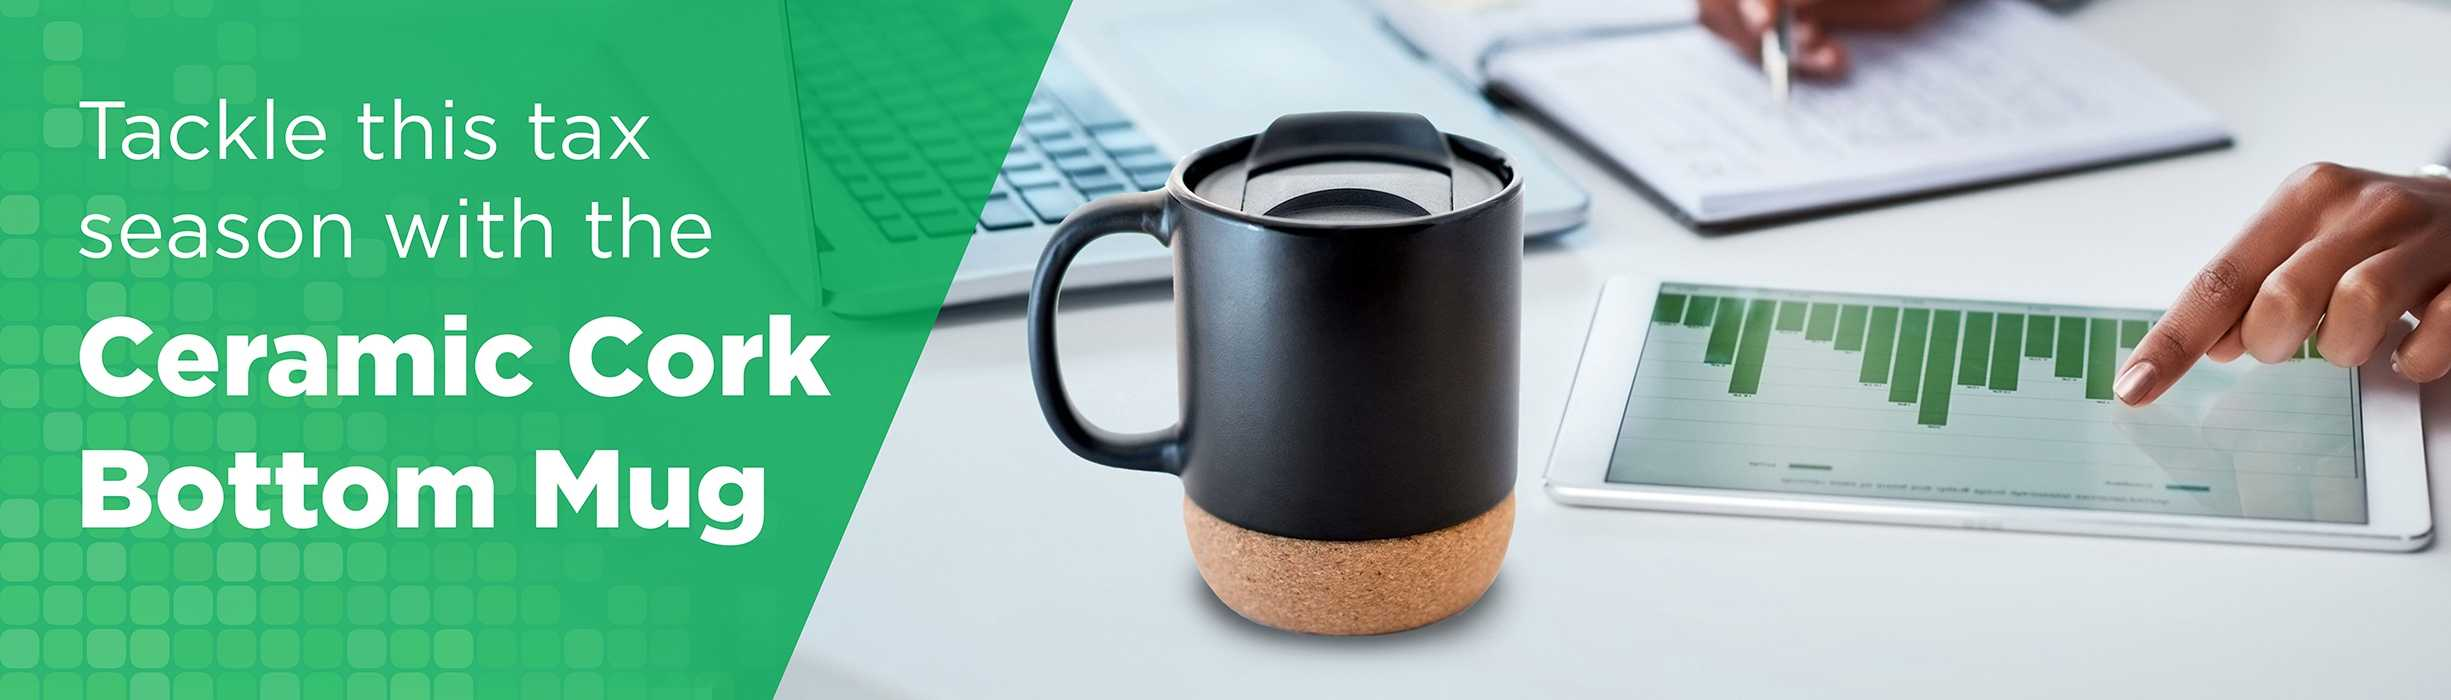 Ceramic Cork Bottom Mug AIM